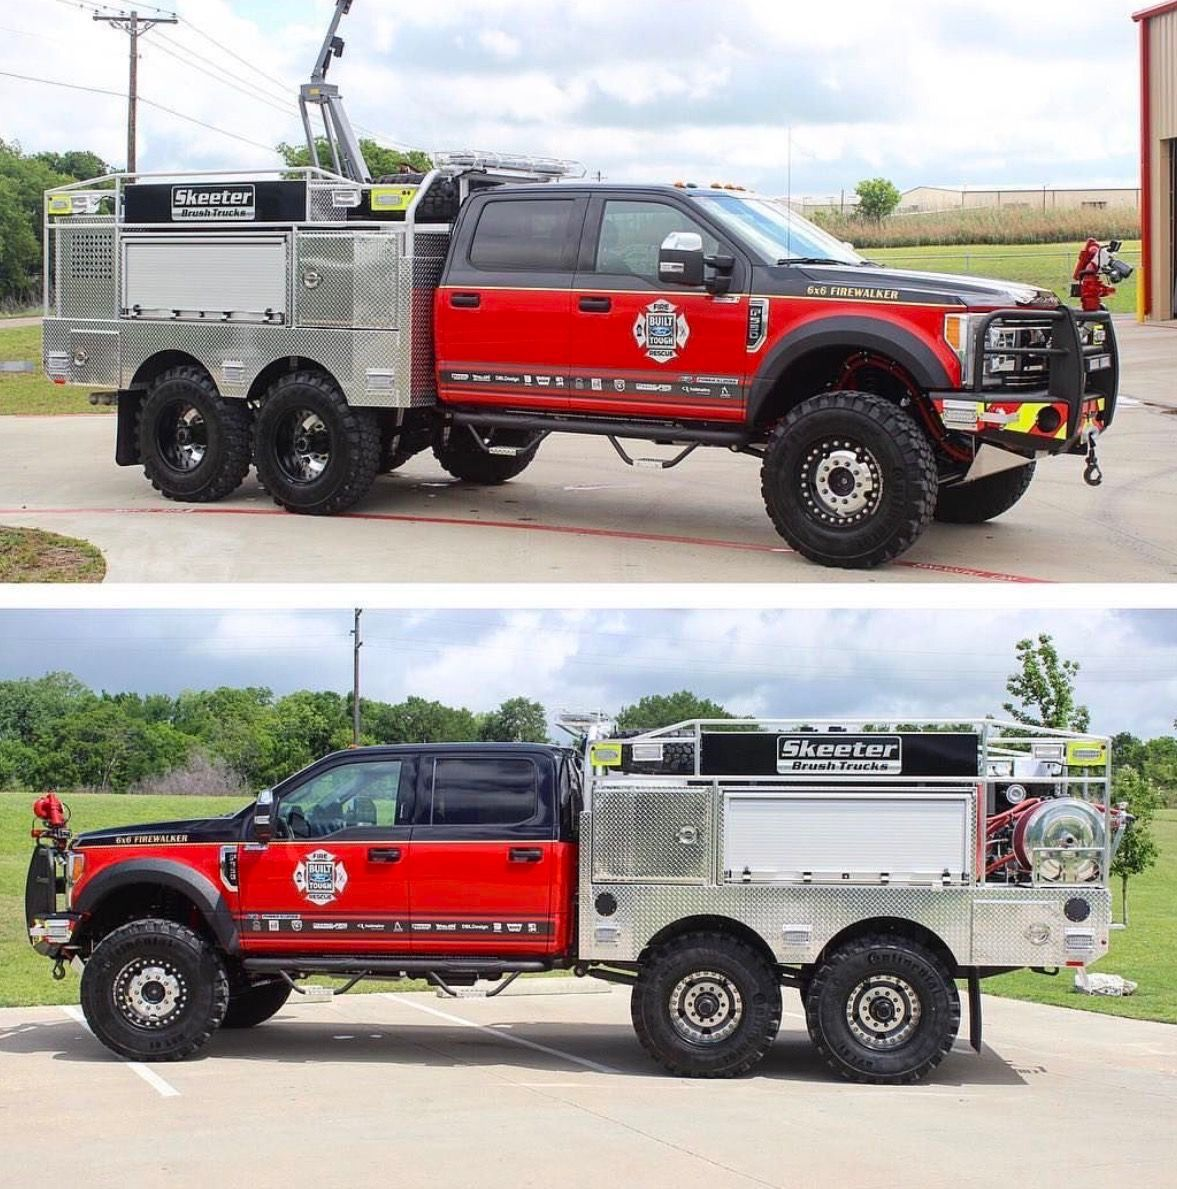 Skeeter Brush Truck 6x6 Fire Walker  2017 Ford F550 Platinum